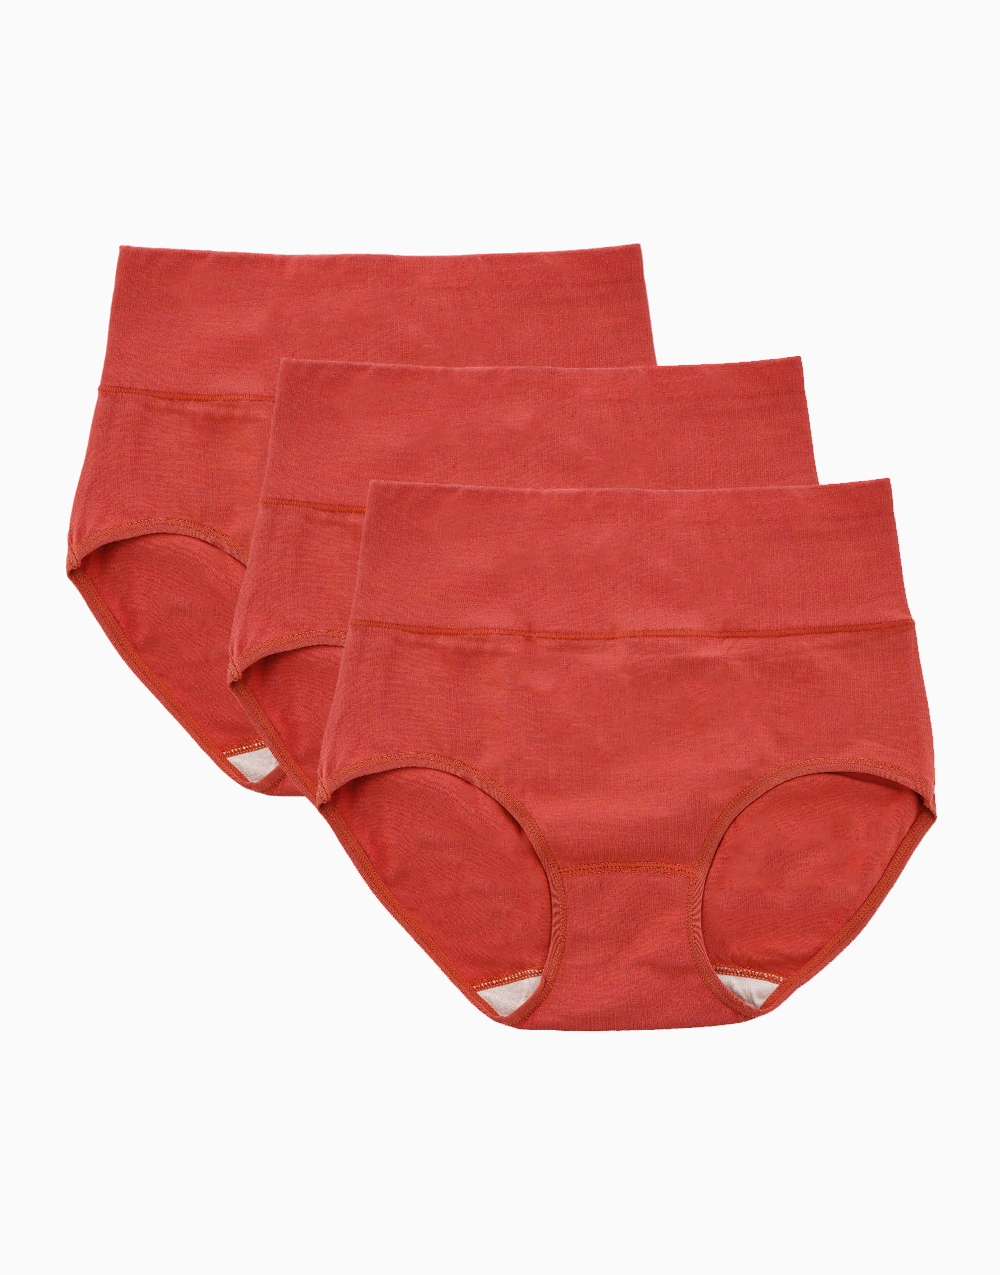 Belly Bikinis in Brick Red (Set of 3 High Rise Control Panties) by Jellyfit | Large